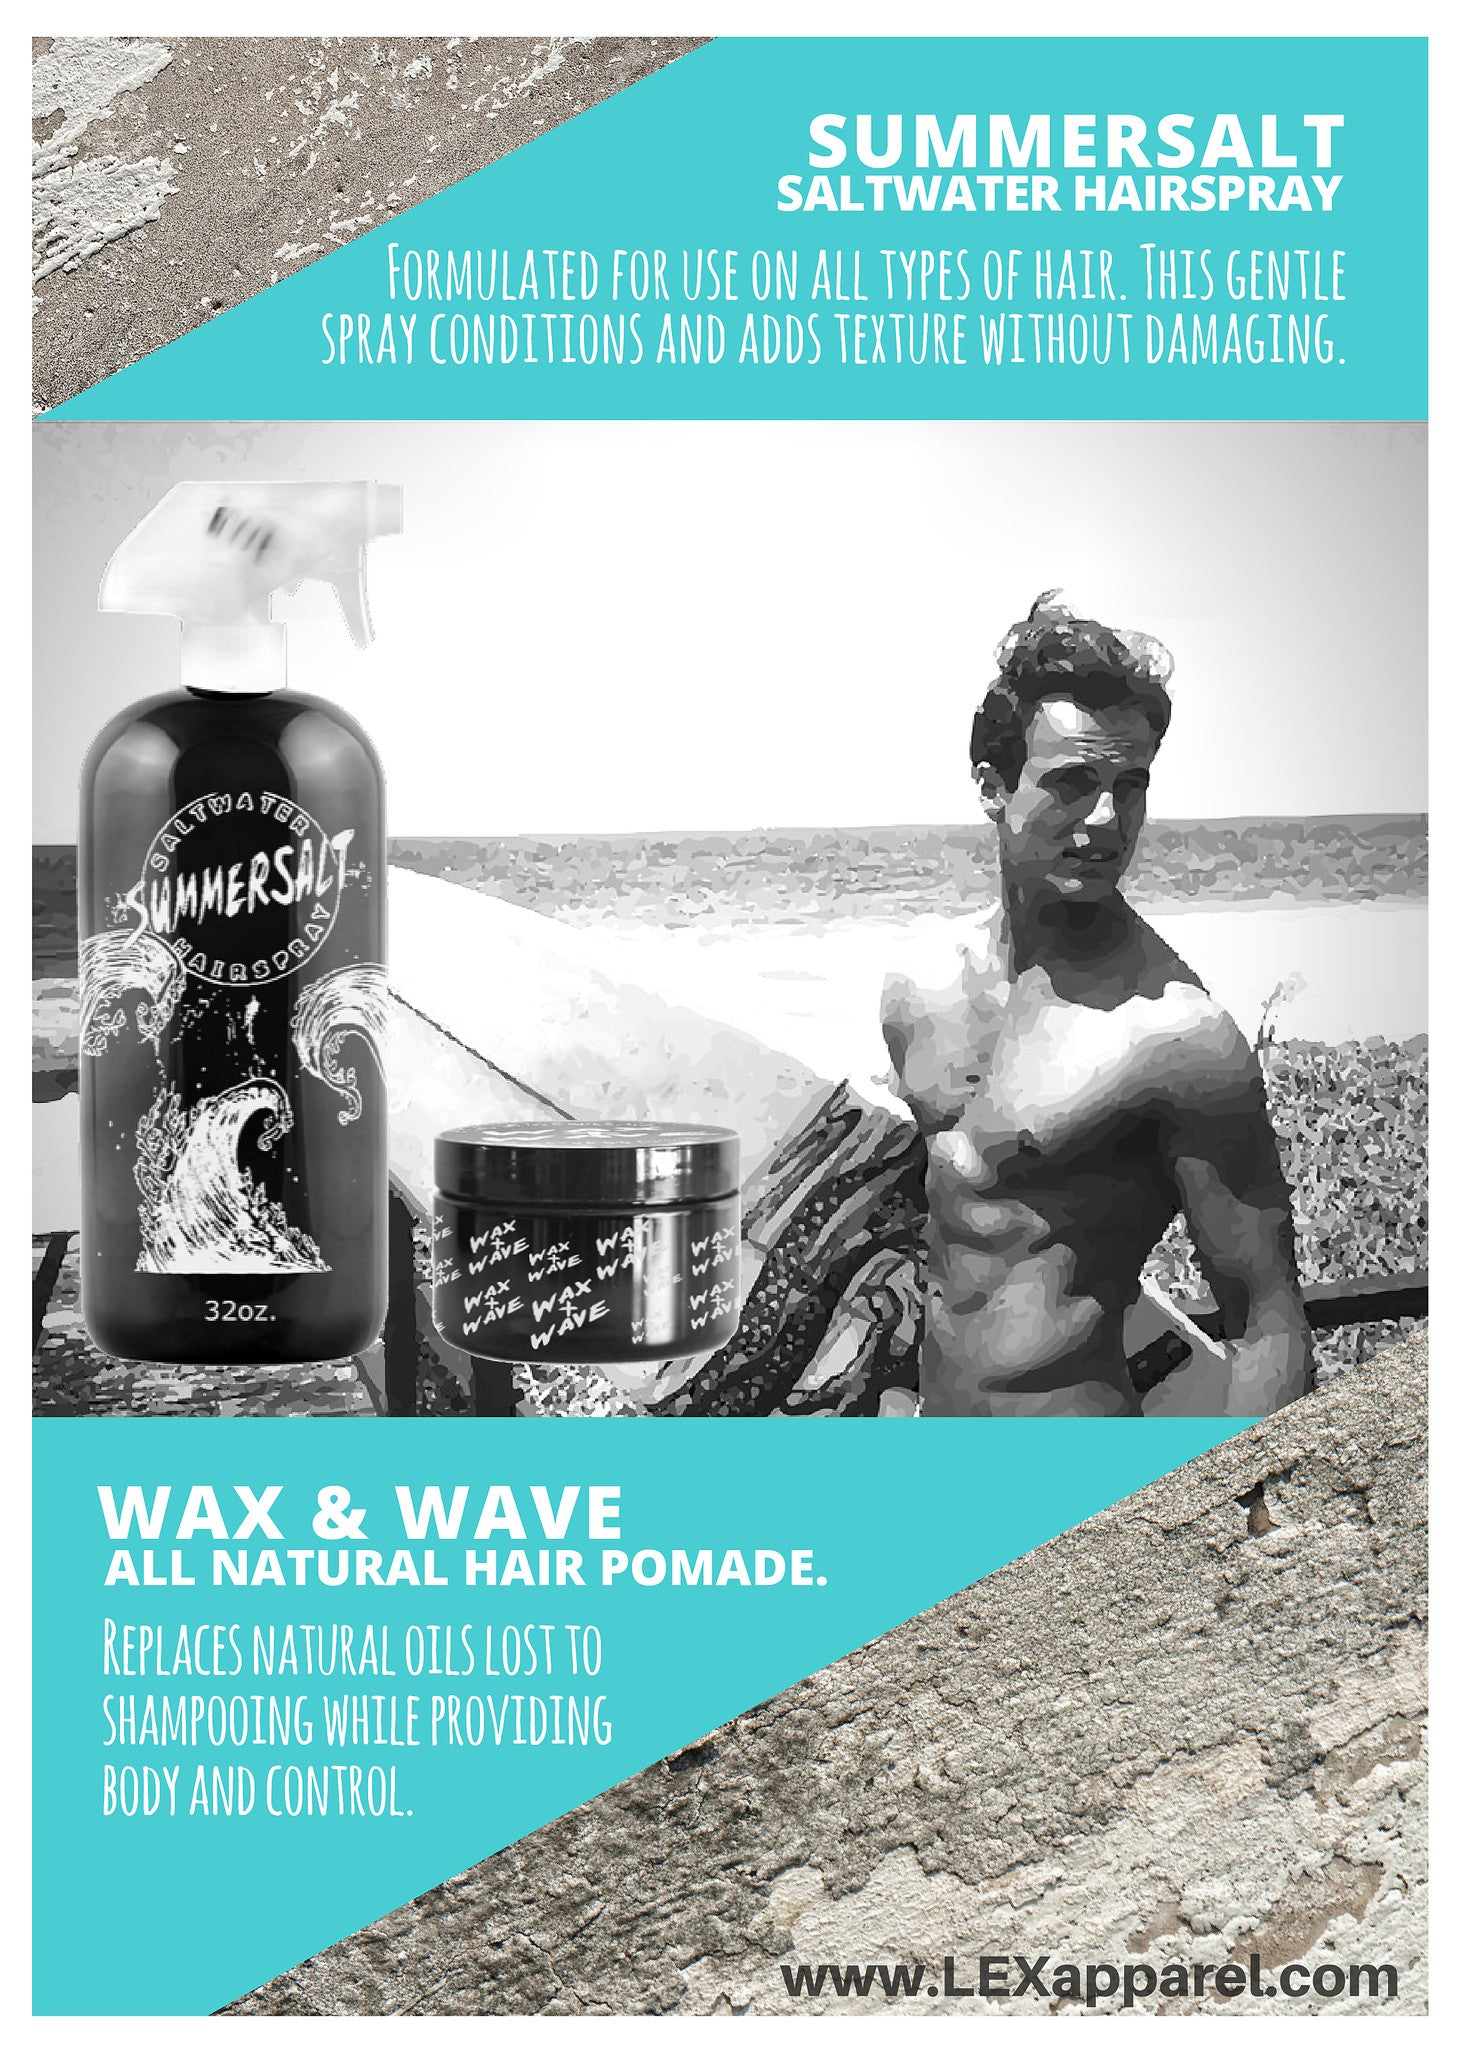 Wax & Wave All Natural Pomade